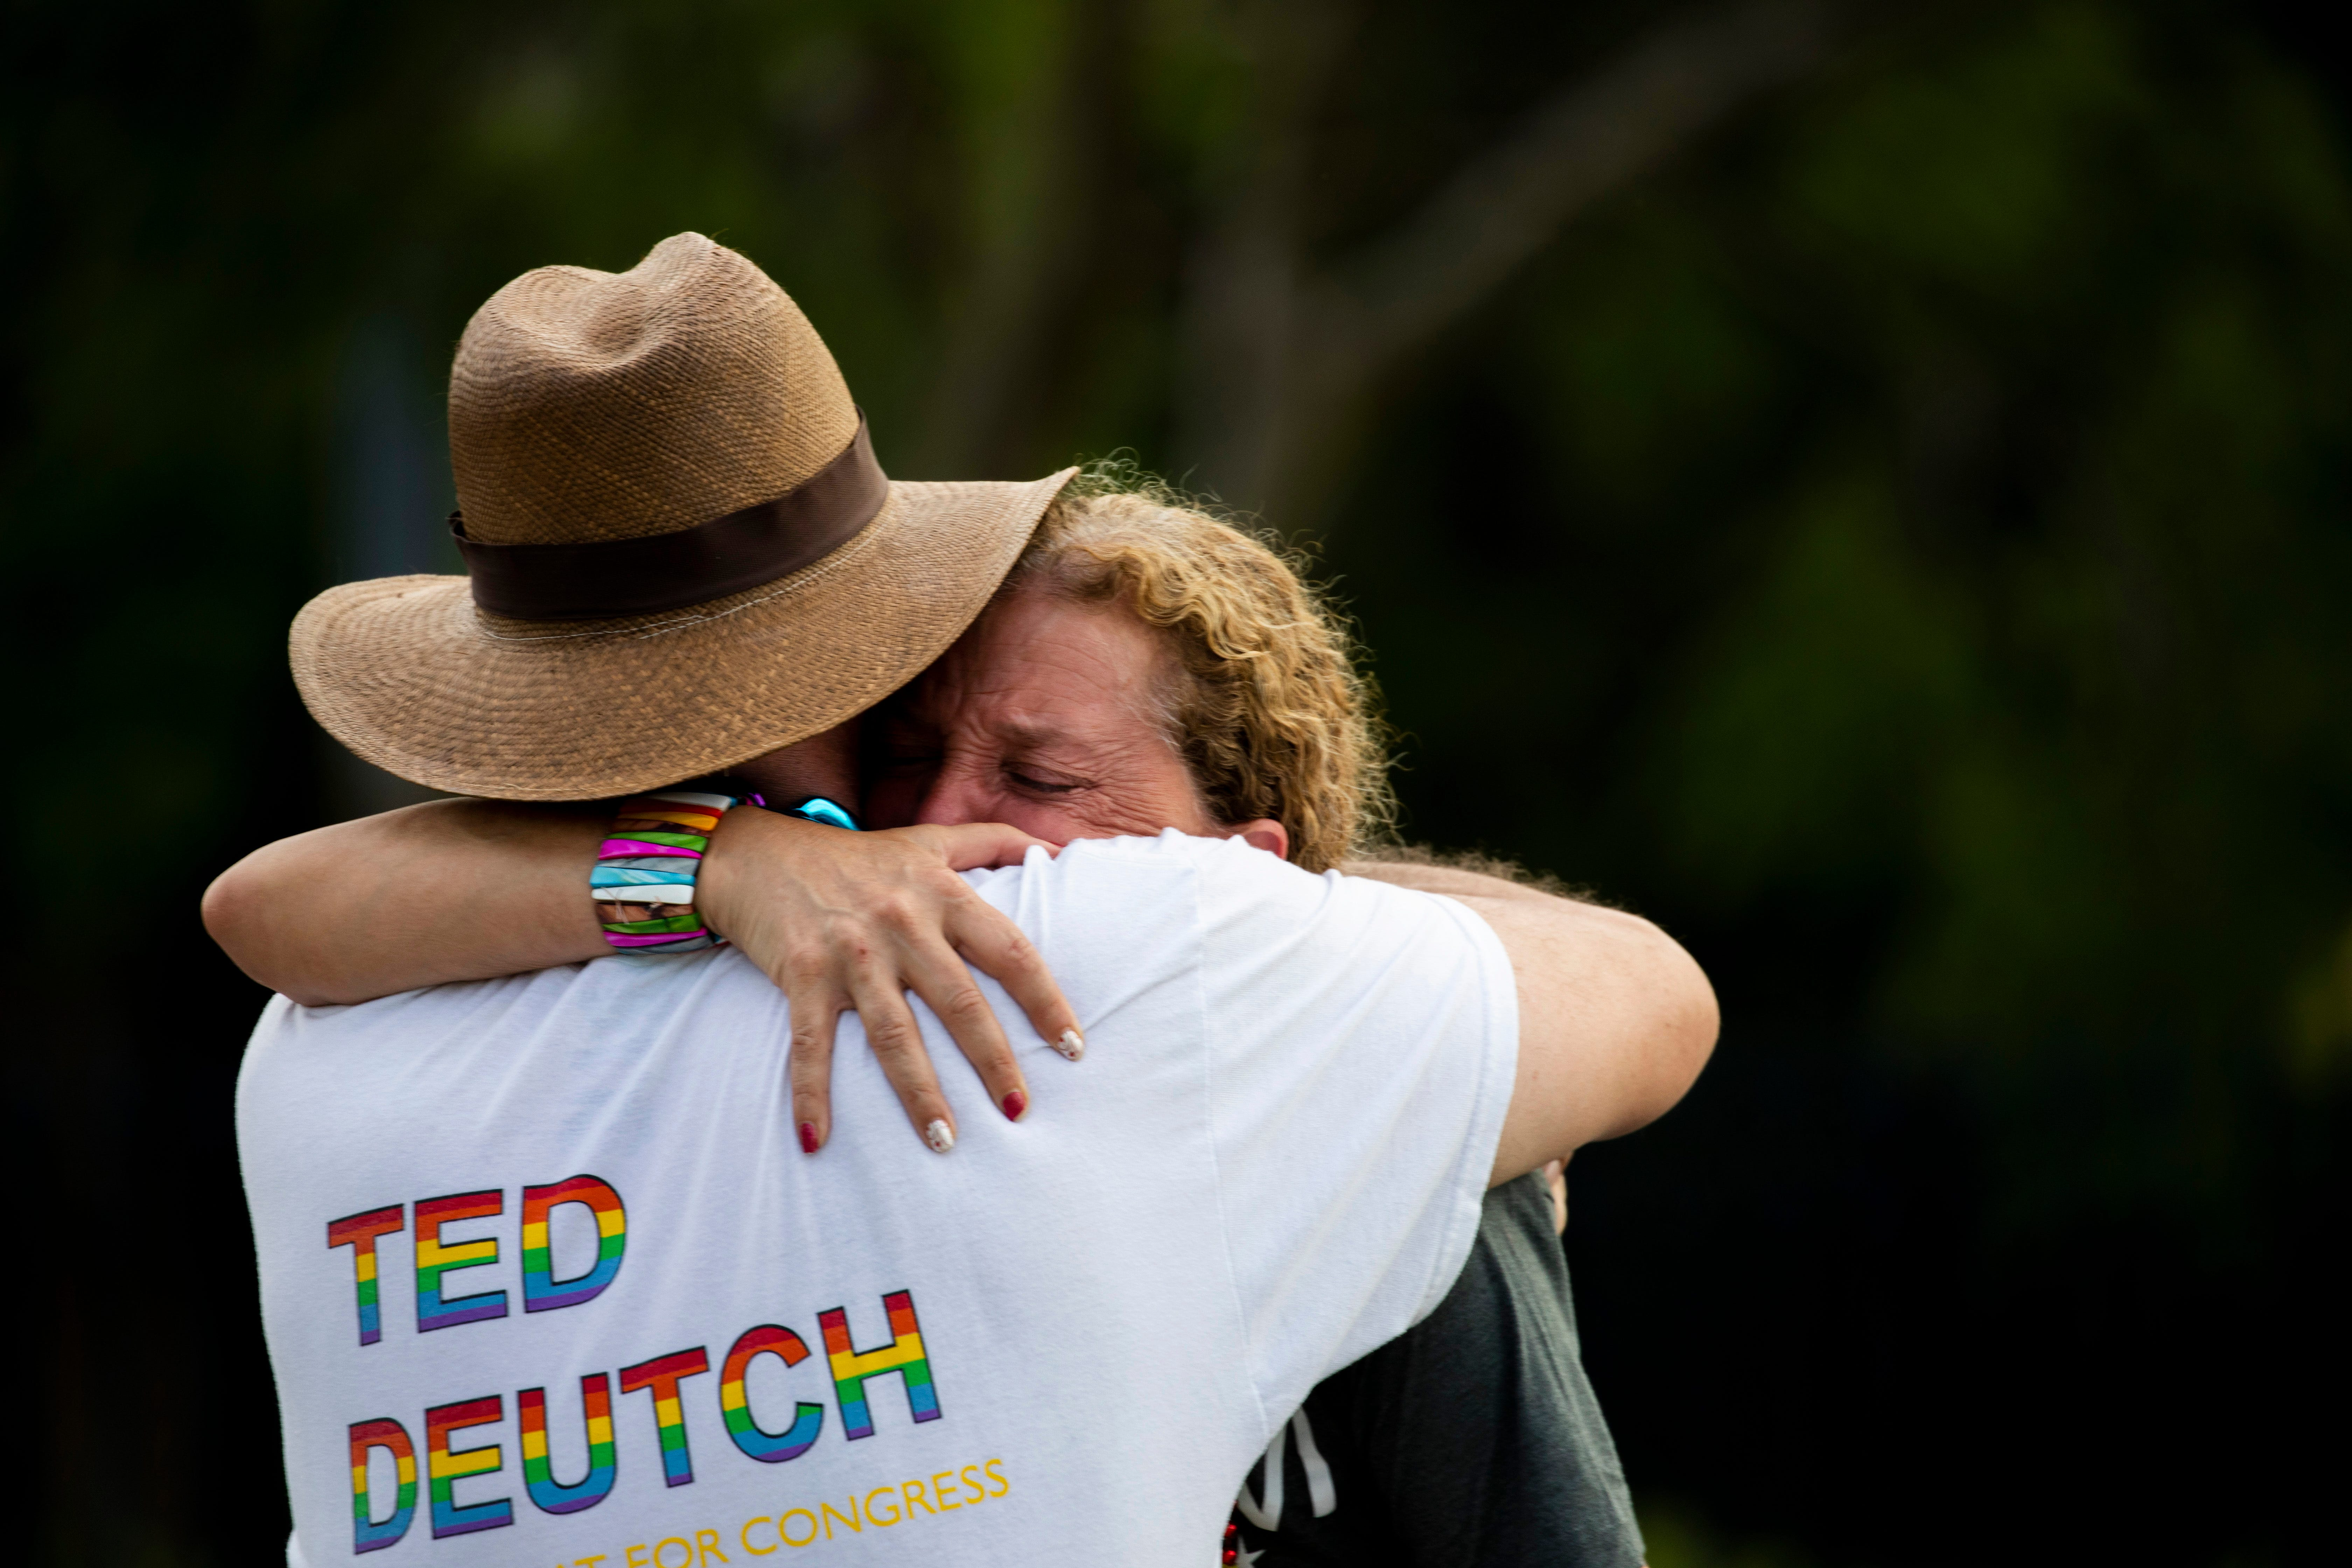 1 dead, 1 seriously hurt after driver crashes into crowd at Pride parade in Florida